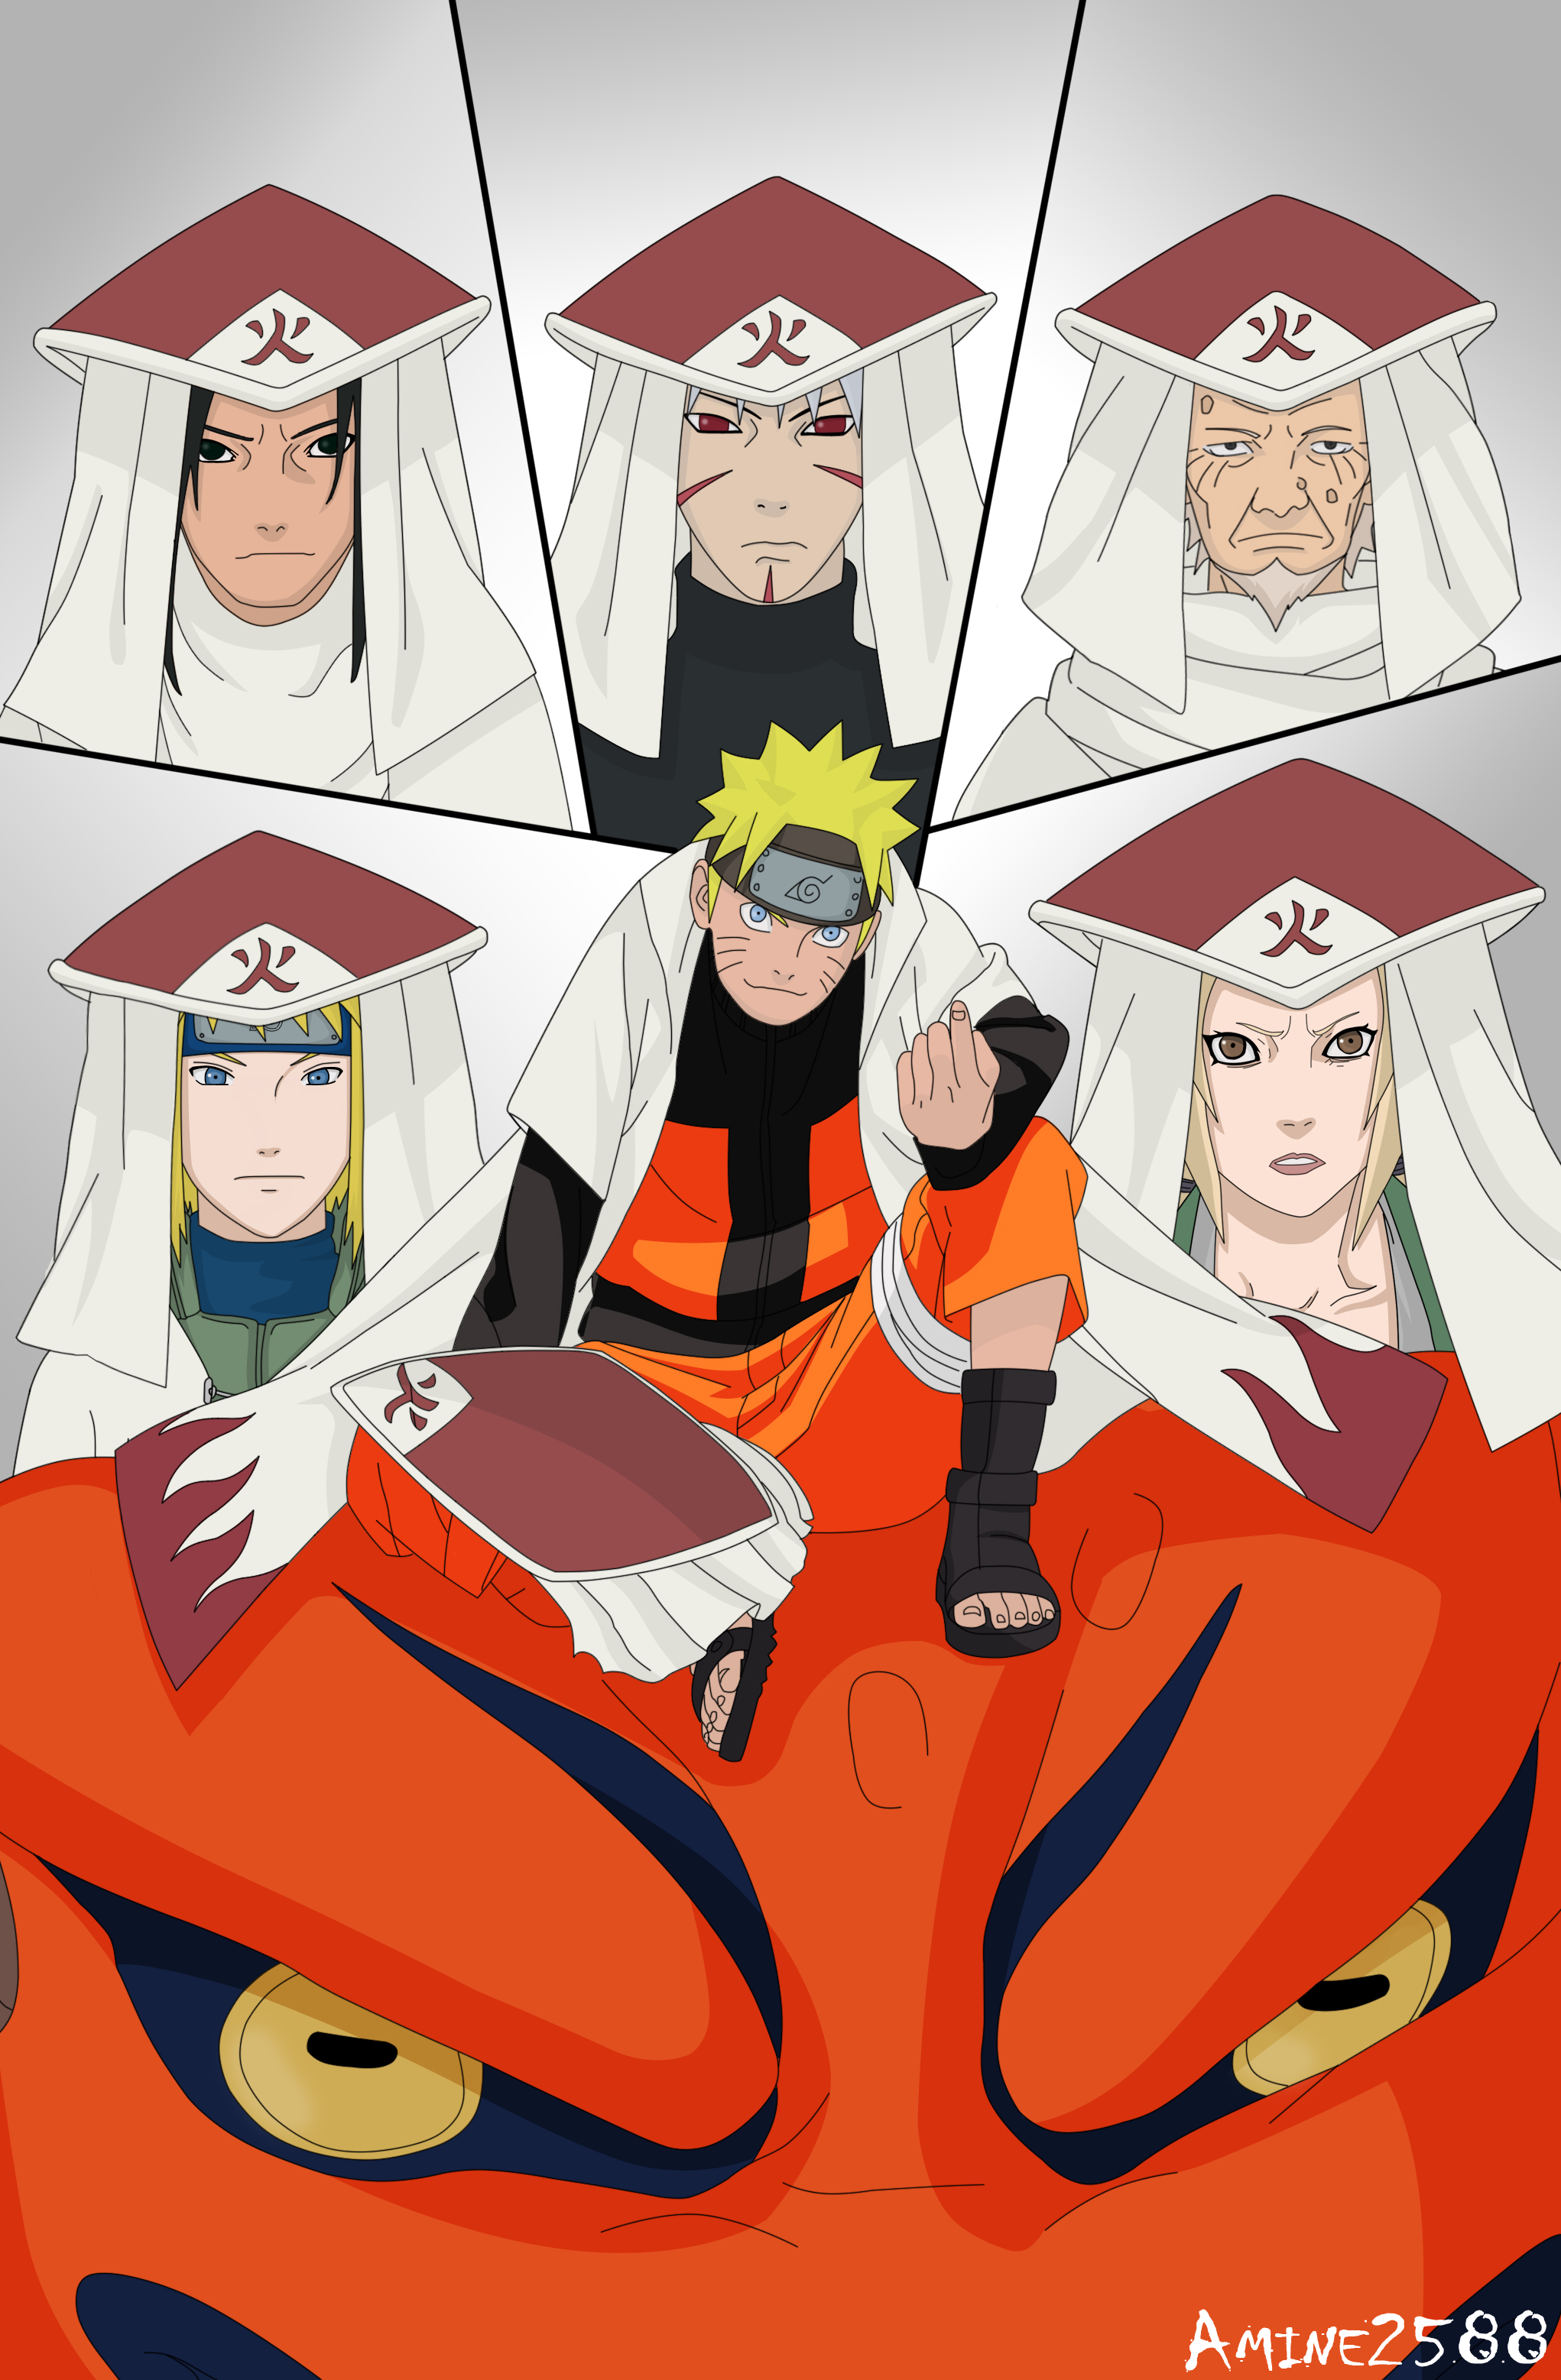 http://dailyanimeart.files.wordpress.com/2012/09/the_most_powerful_hokage_by_amine2588-d5ev356.jpg